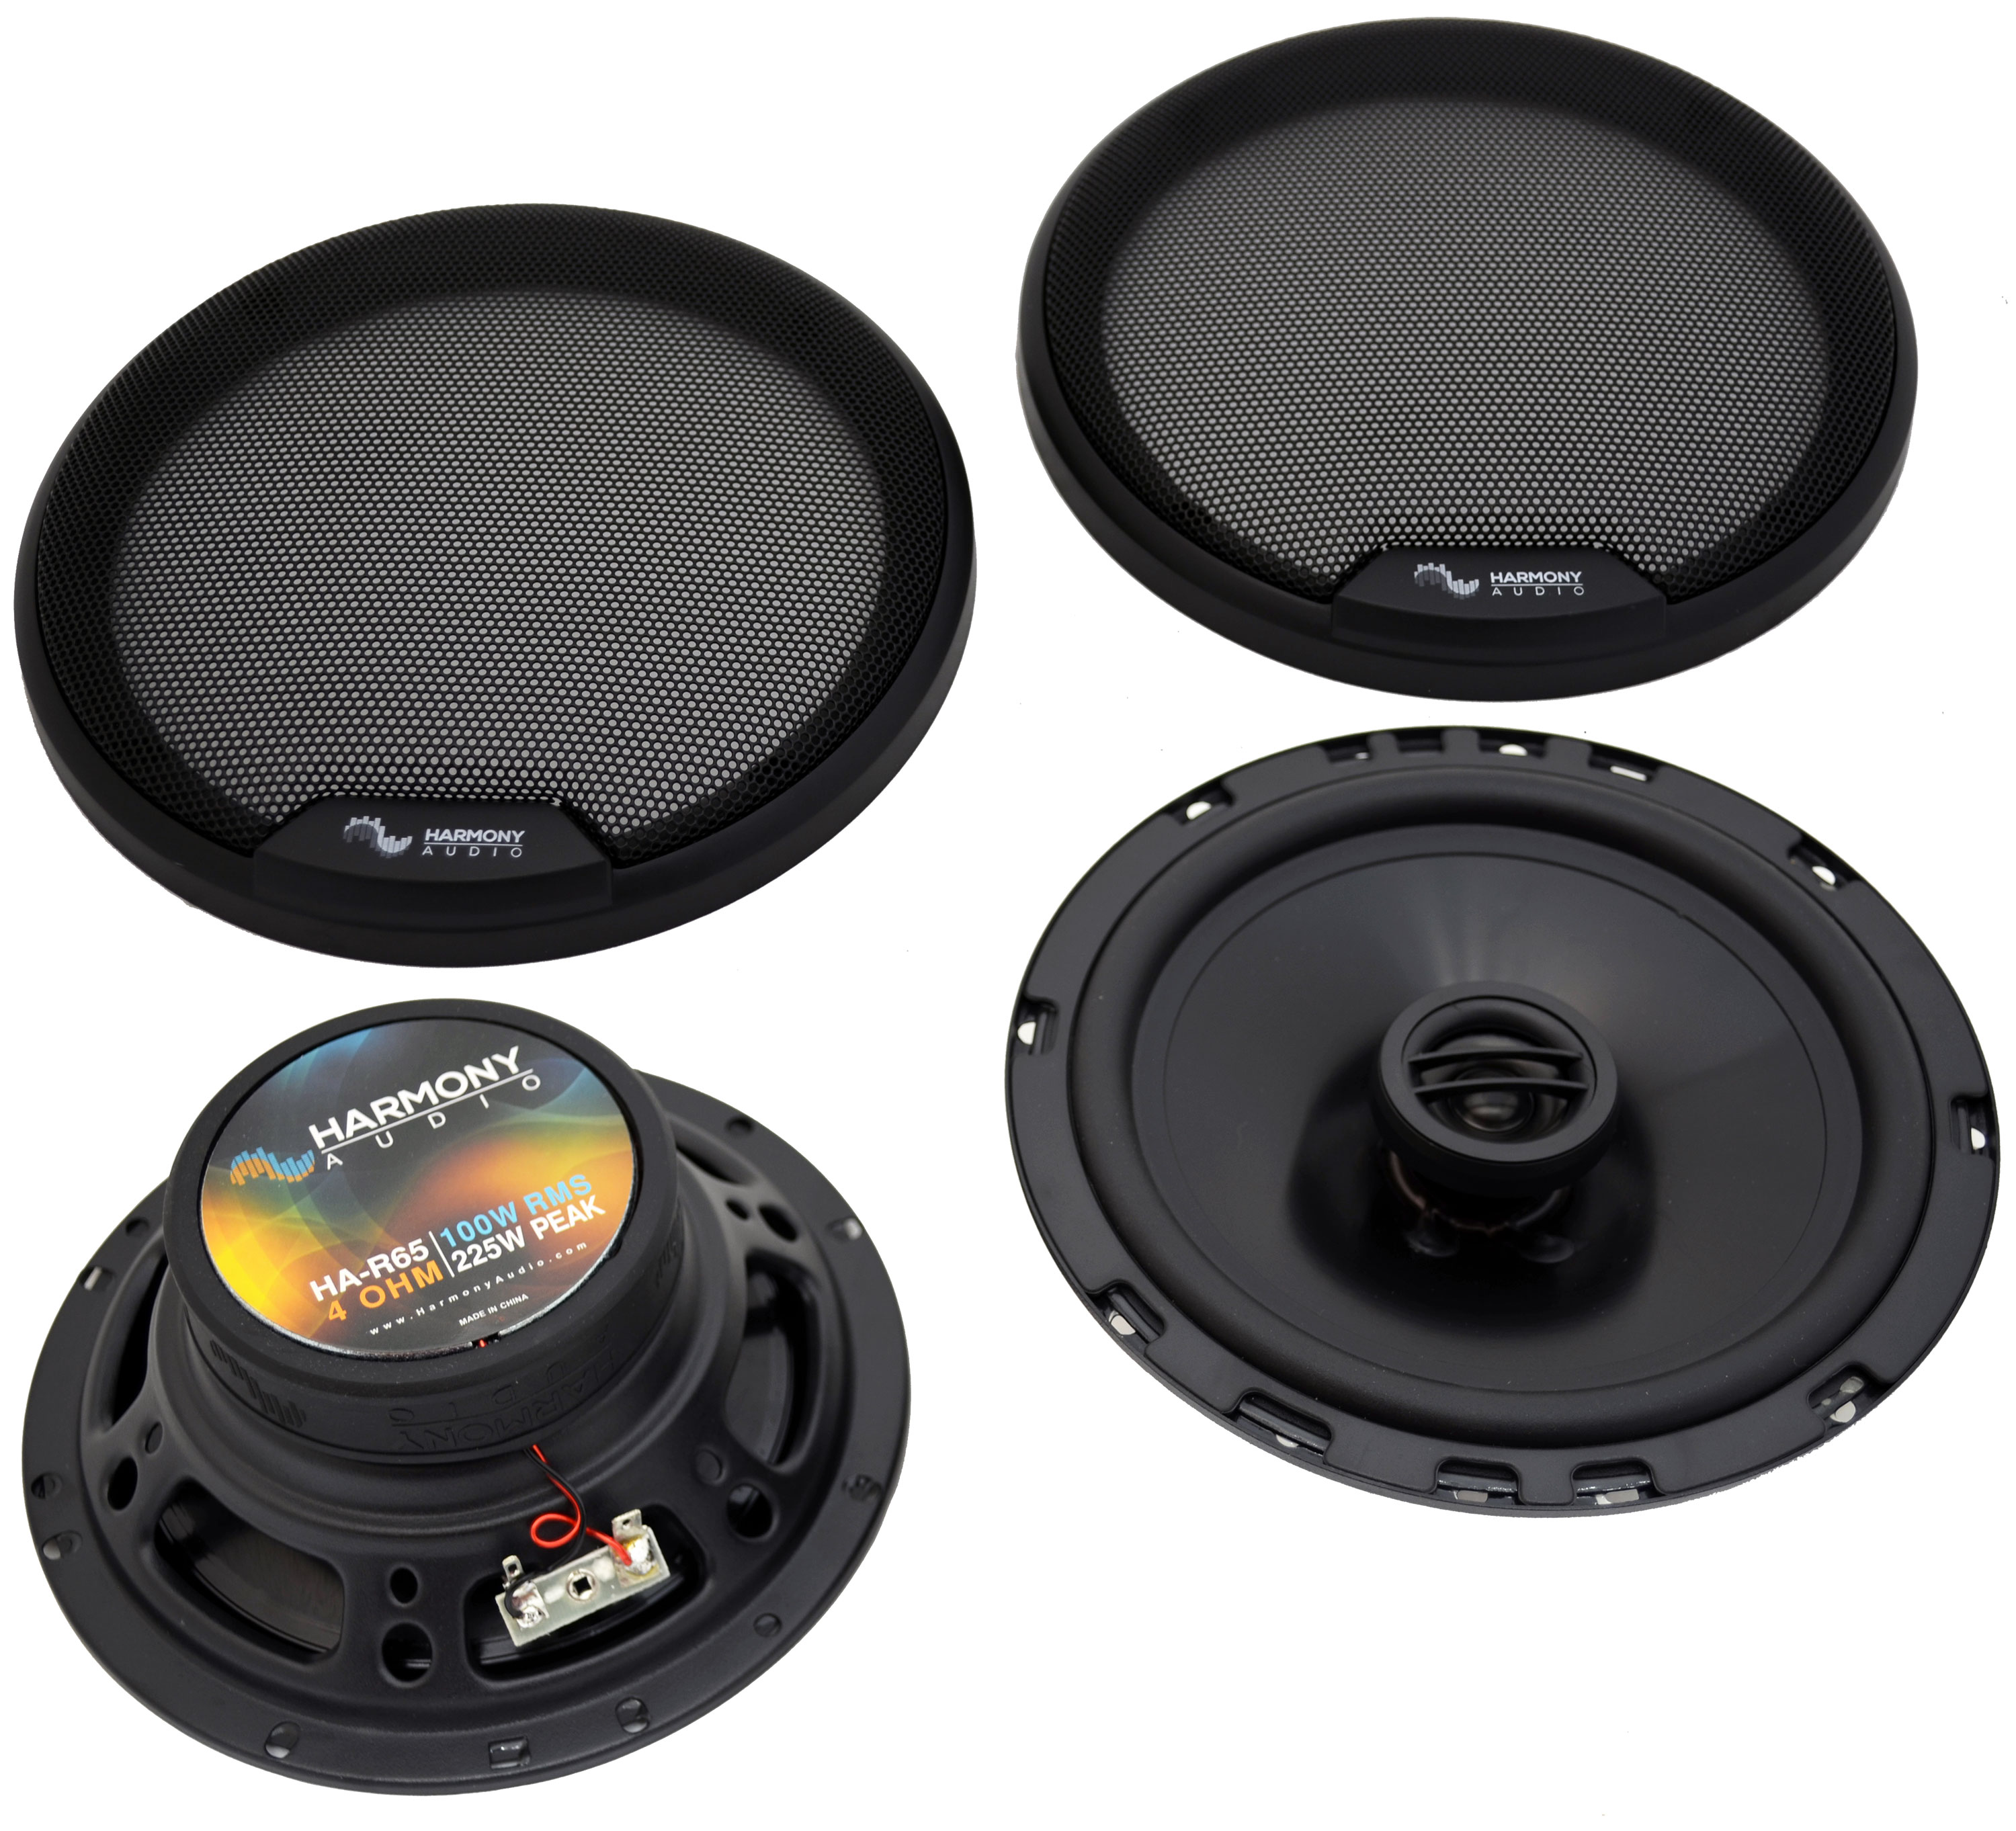 Fits Mercedes CLK-Class 1998-2003 Rear Deck Replacement Harmony HA-R65 Speakers